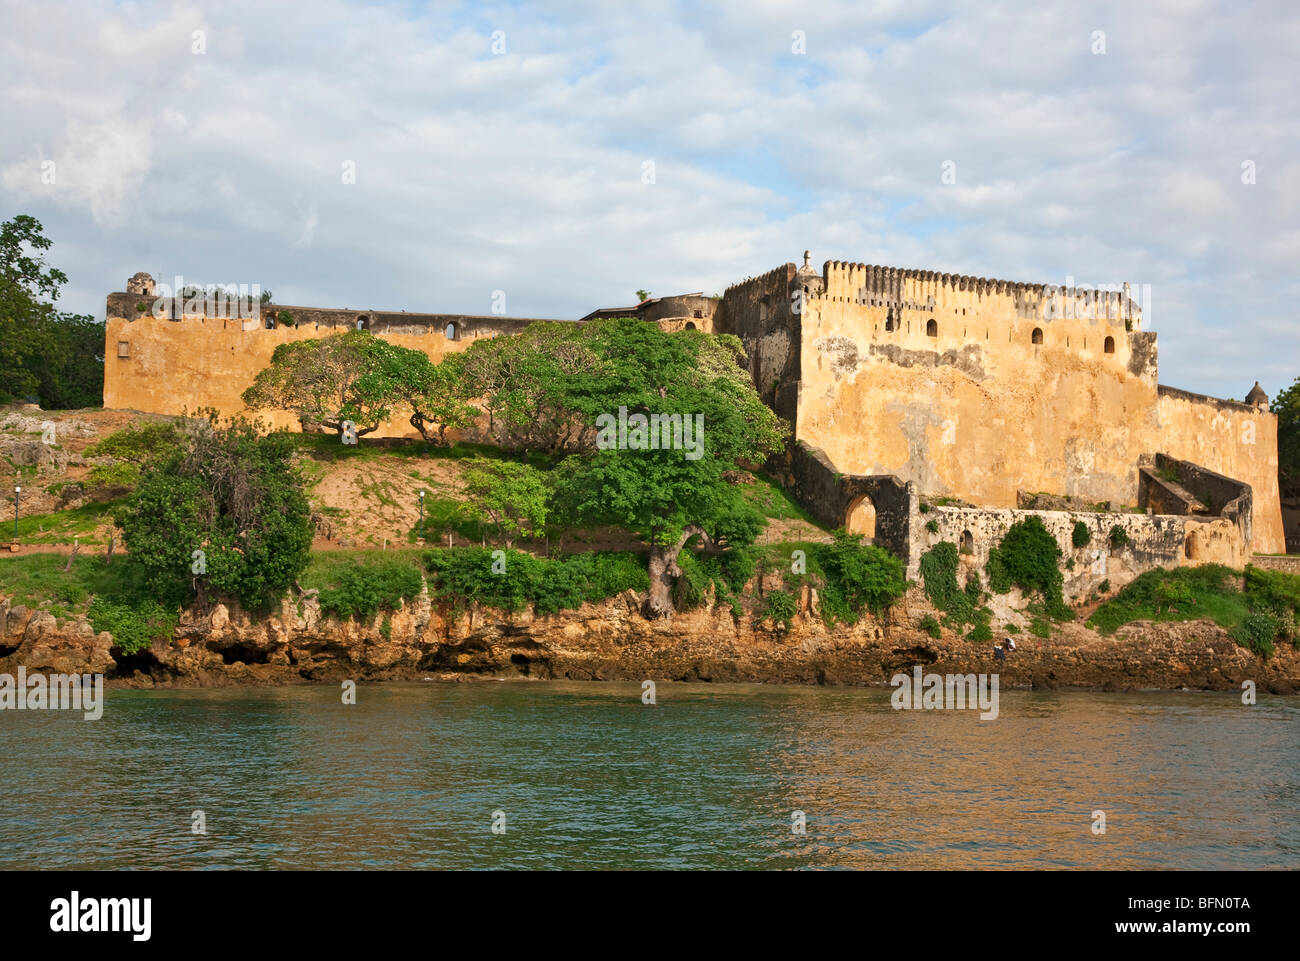 Kenya, Mombasa. Historic Fort Jesus, built by the Portuguese in 1593, is situated at the entrance to the old dhow - Stock Image